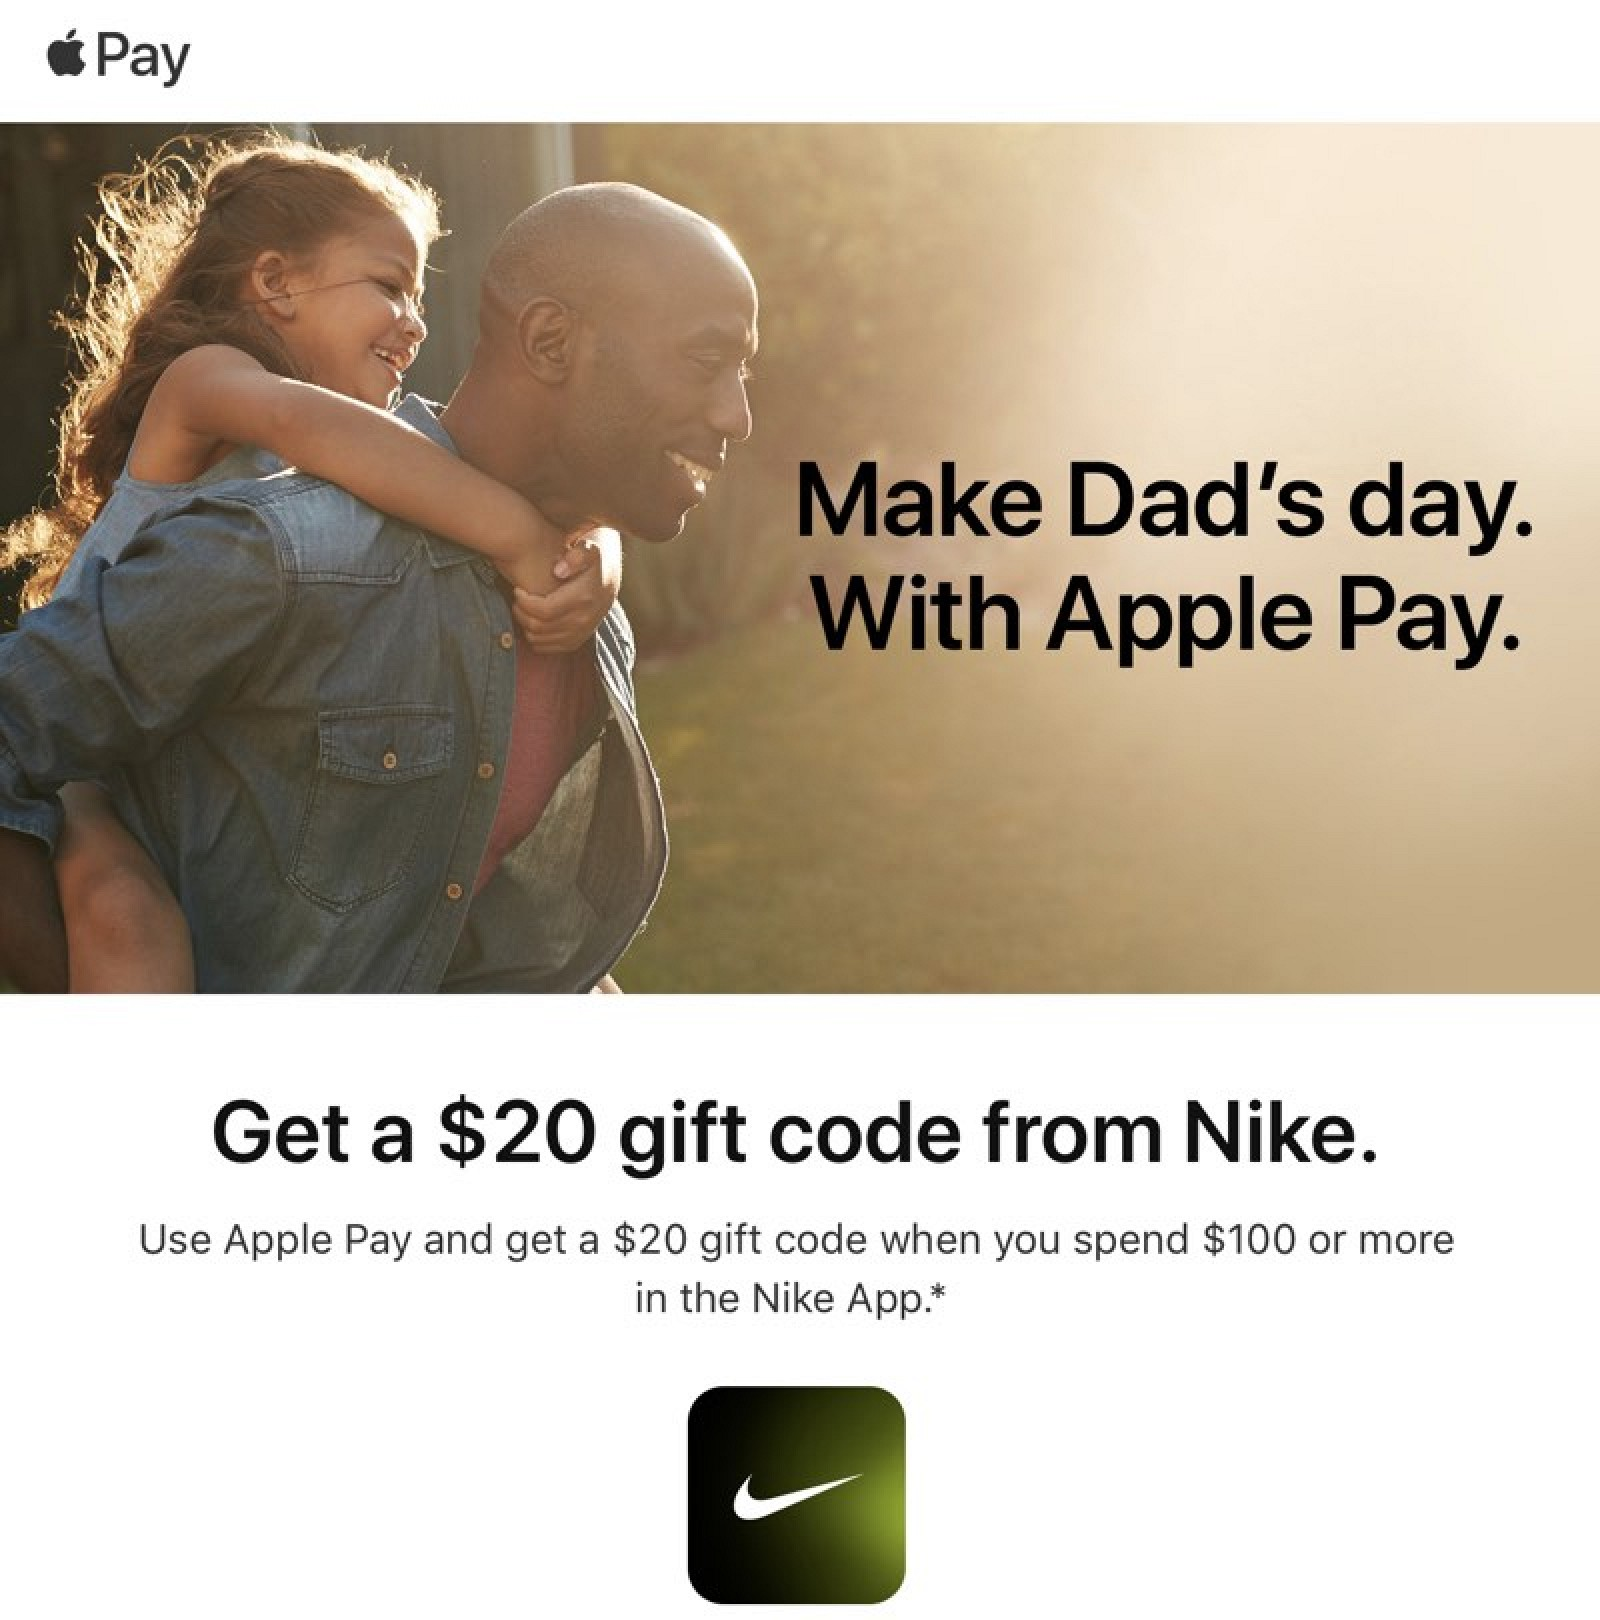 Apple Pay Promo Offers $20 Gift Code With $100+ Purchase From Nike App - MacRumors